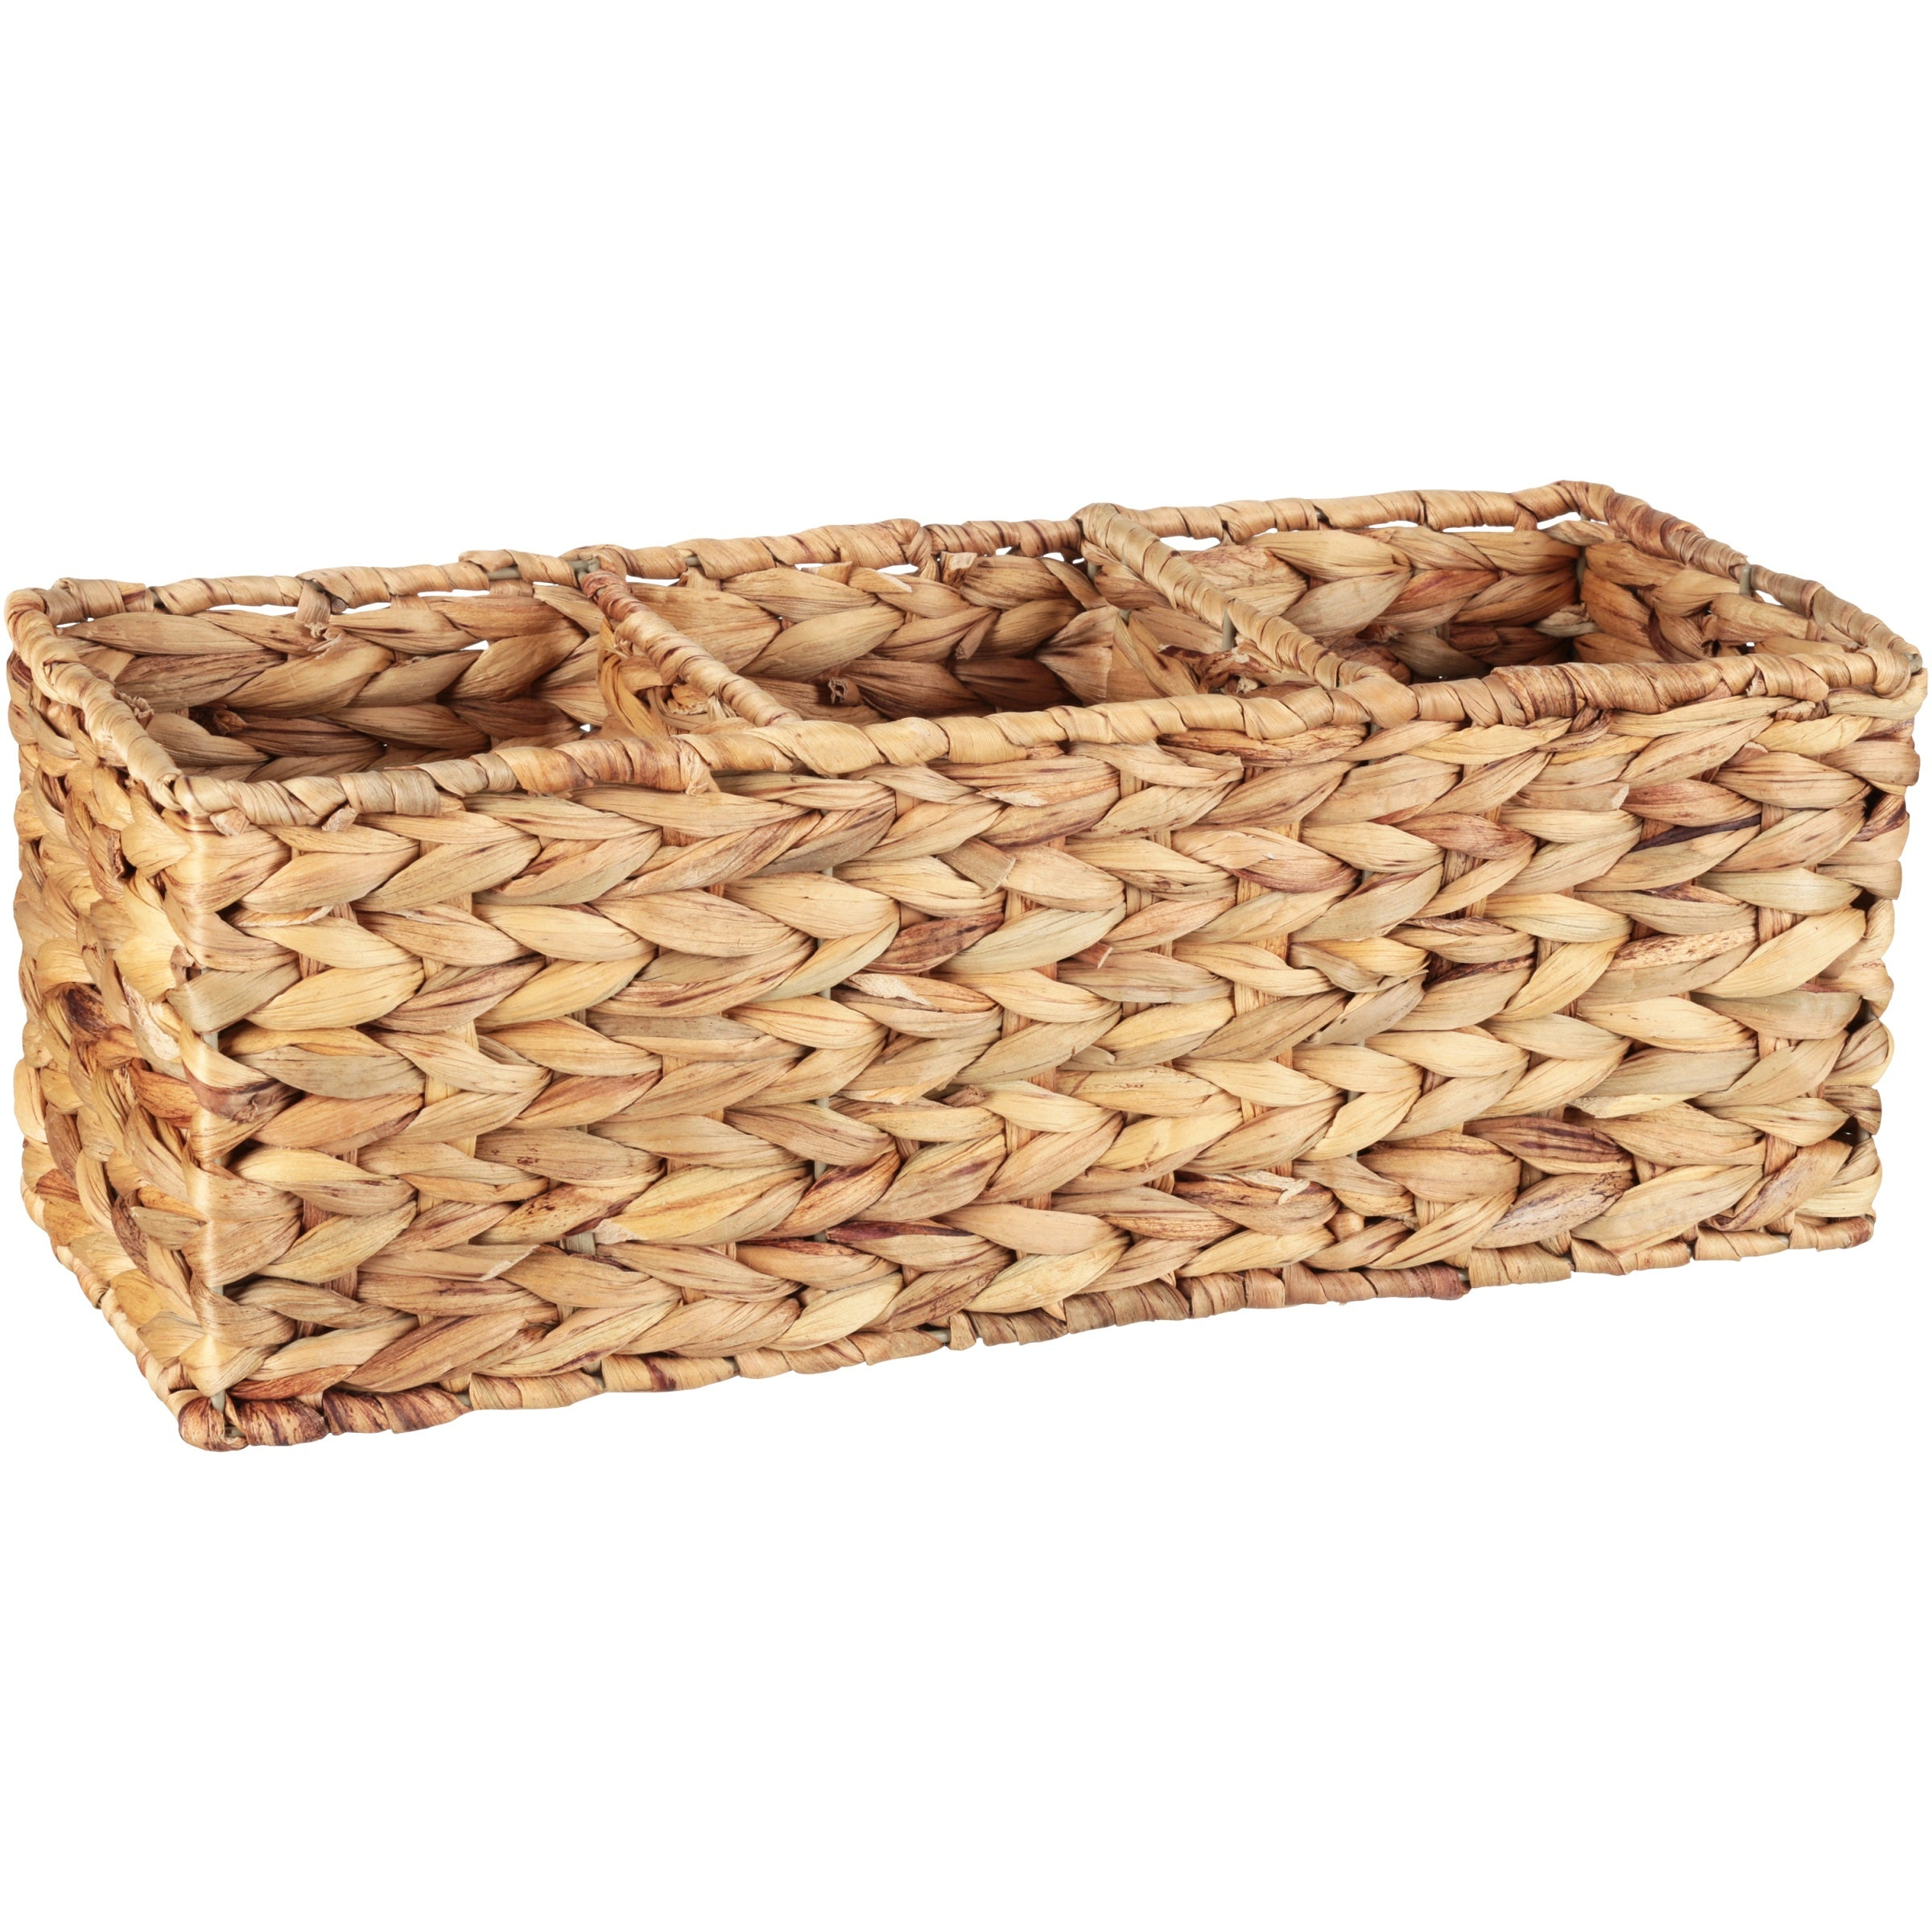 Bathroom basket